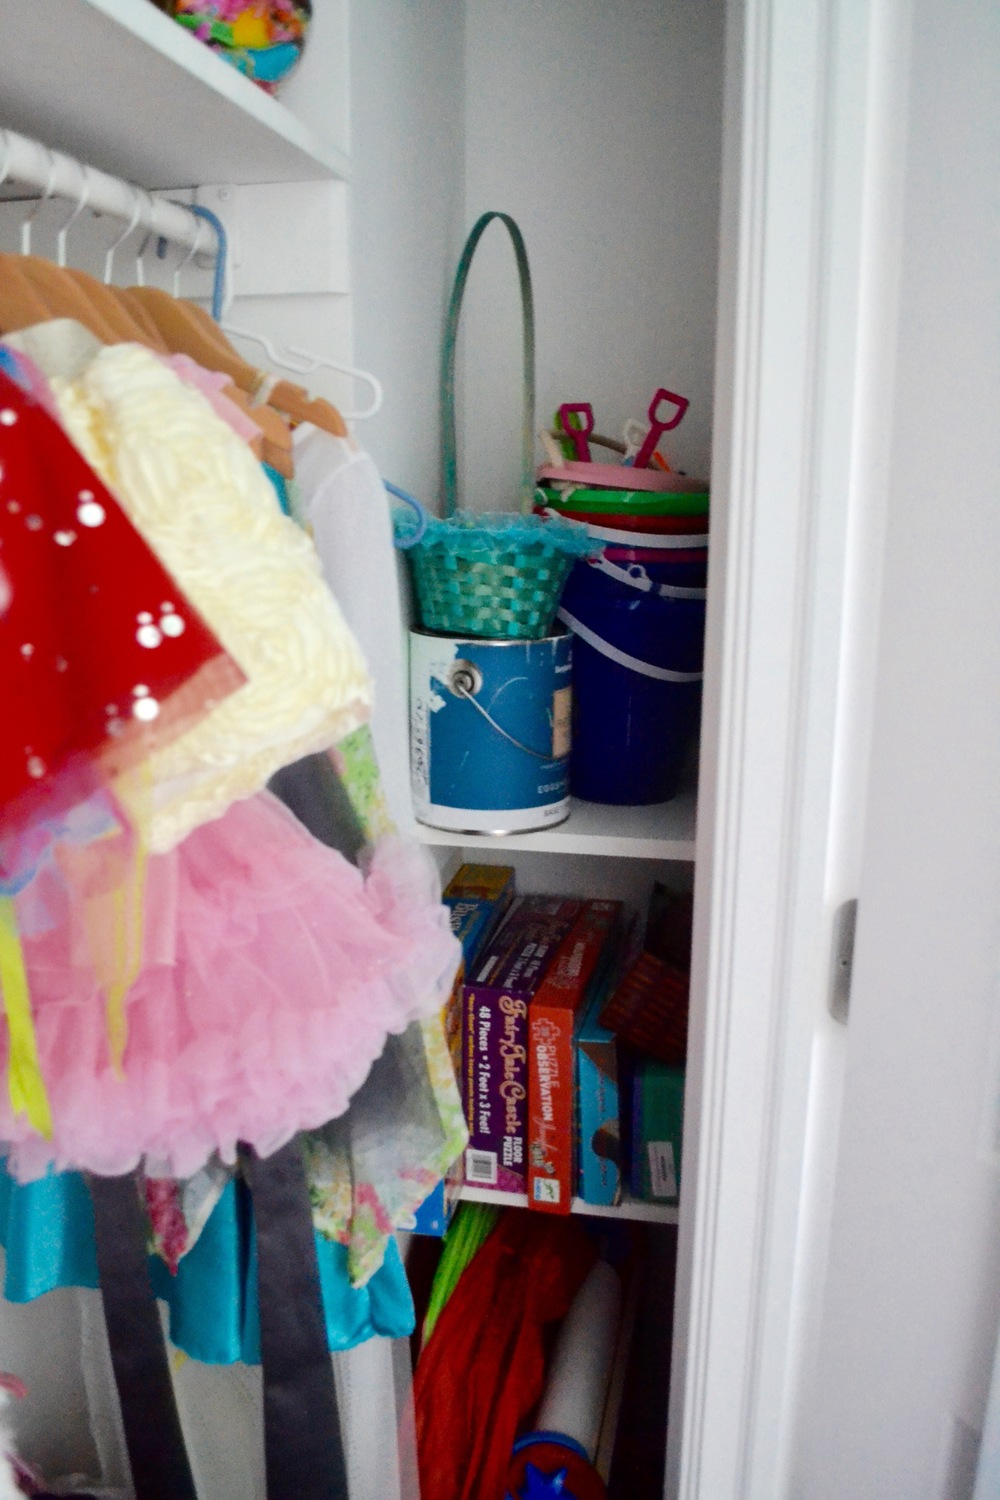 The closet is pretty deep and has a tucked away side shelf that allows for plenty of toy and game storage.